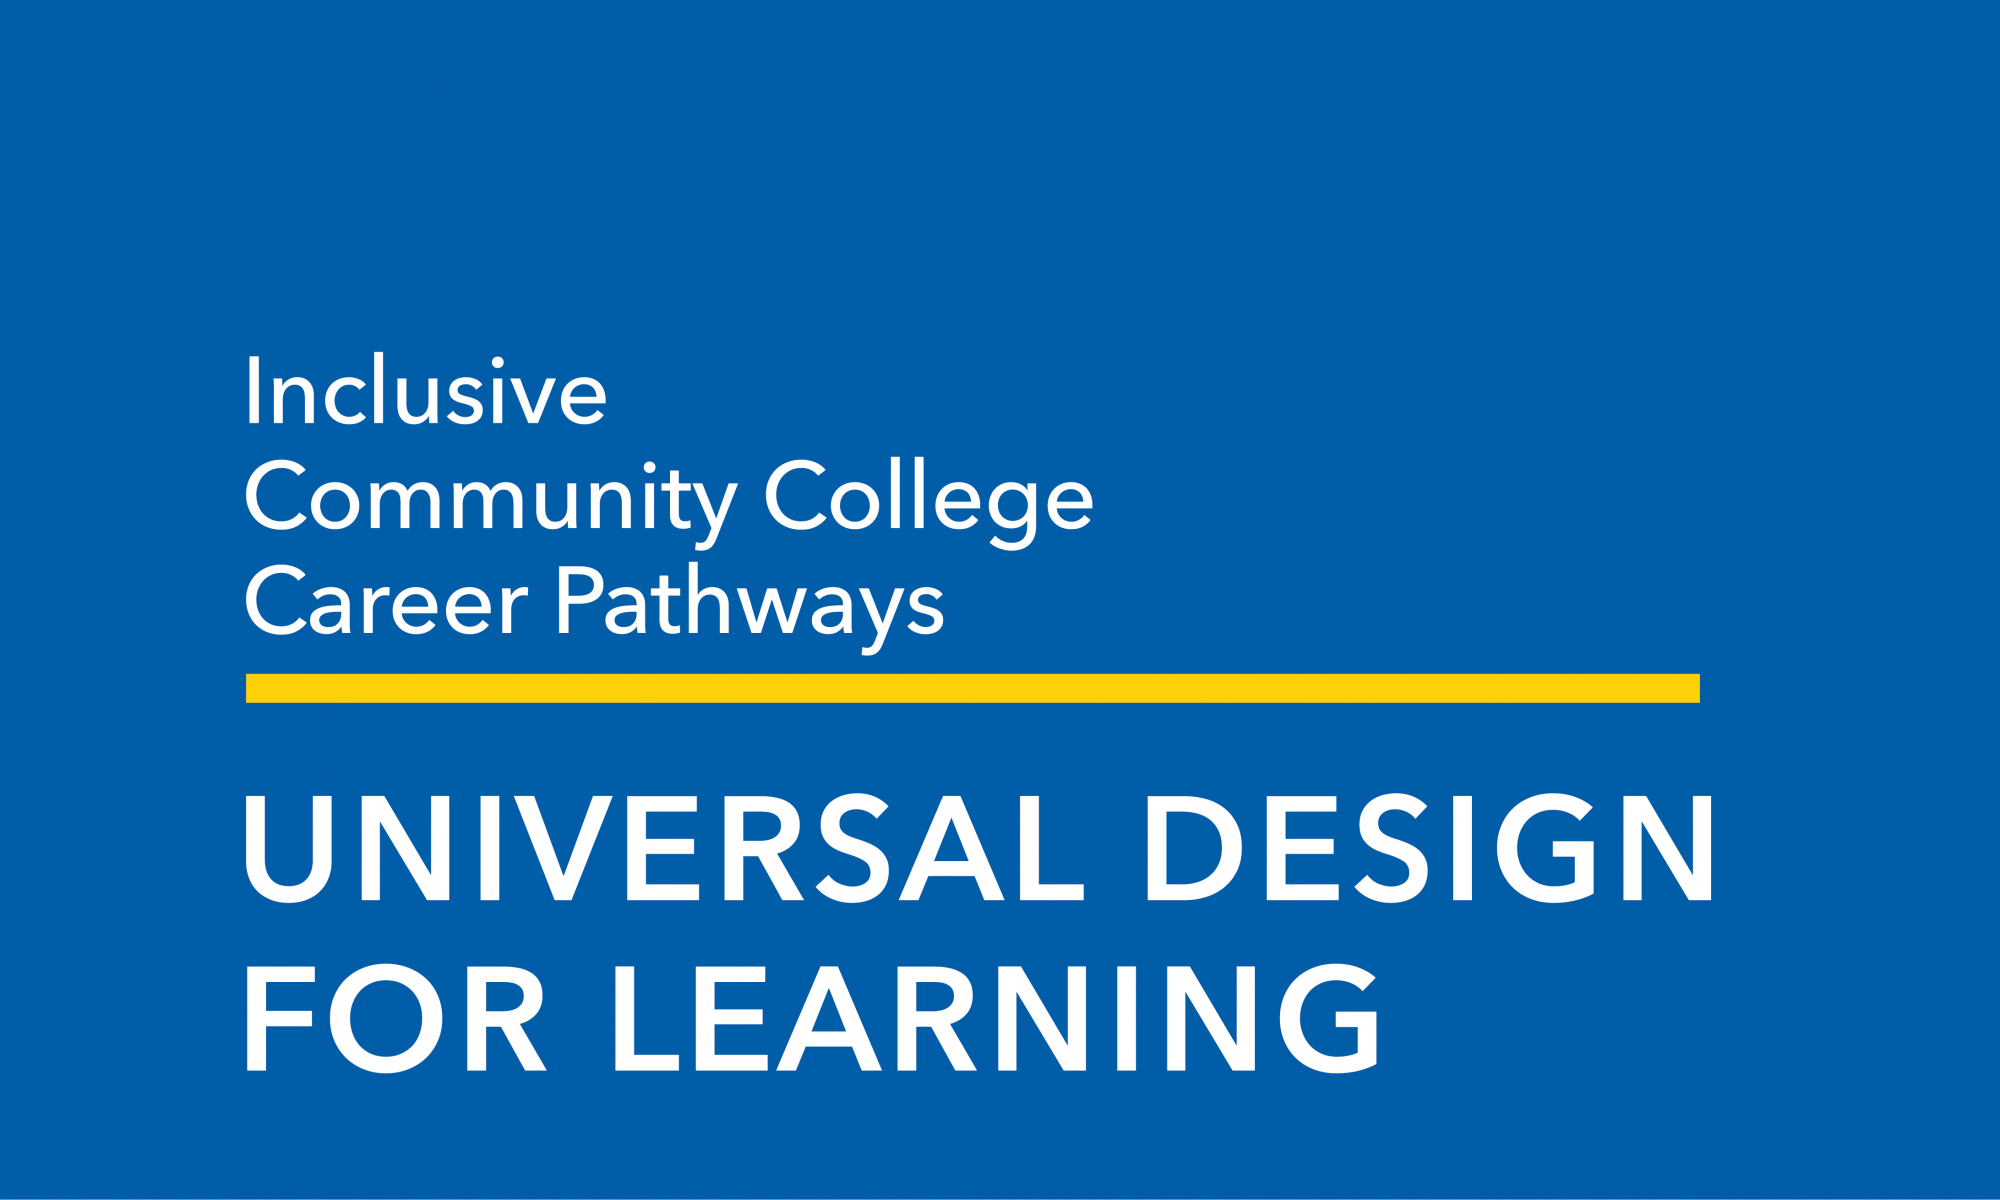 Inclusive Community College Career Pathways: Universal Design for Learning